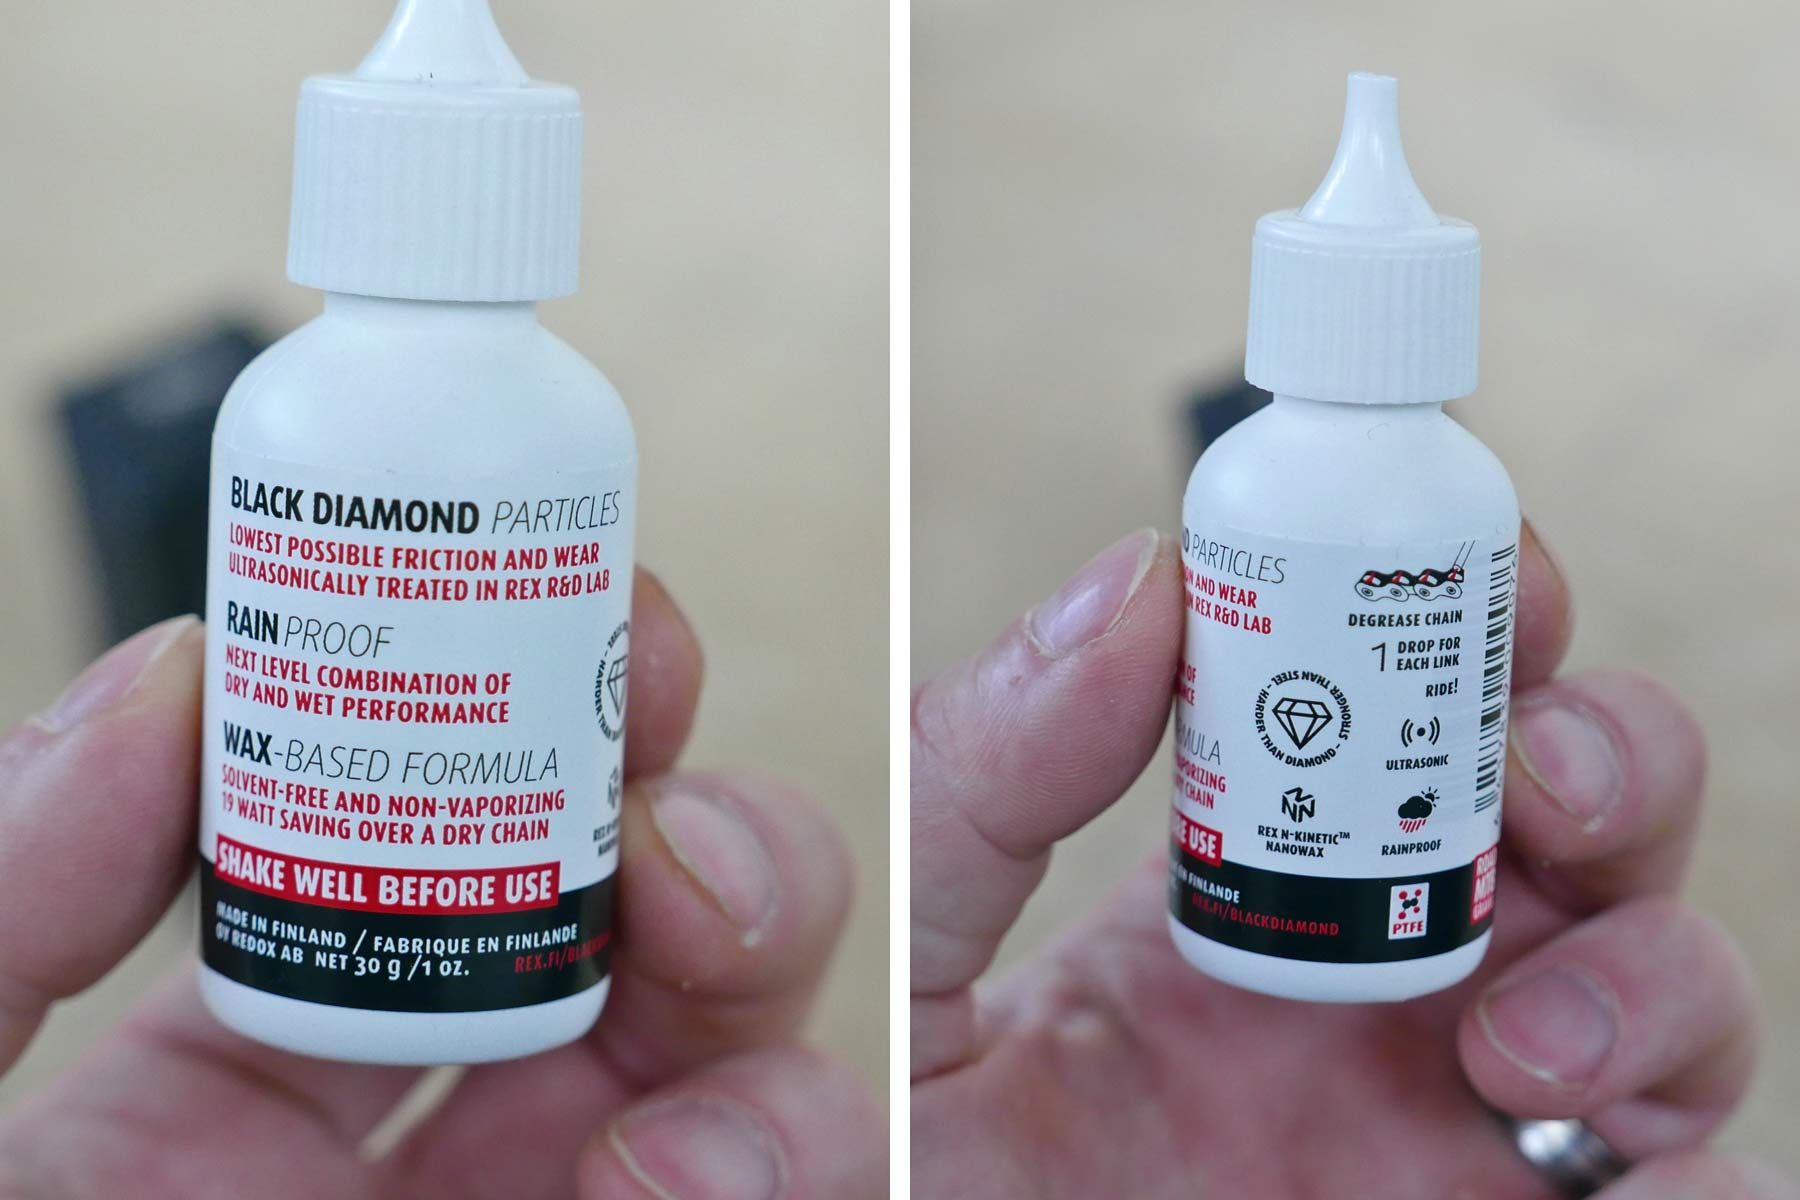 Rex Black Diamond lube, paraffin wax-based nanotech fastest ever bicycle chain lube